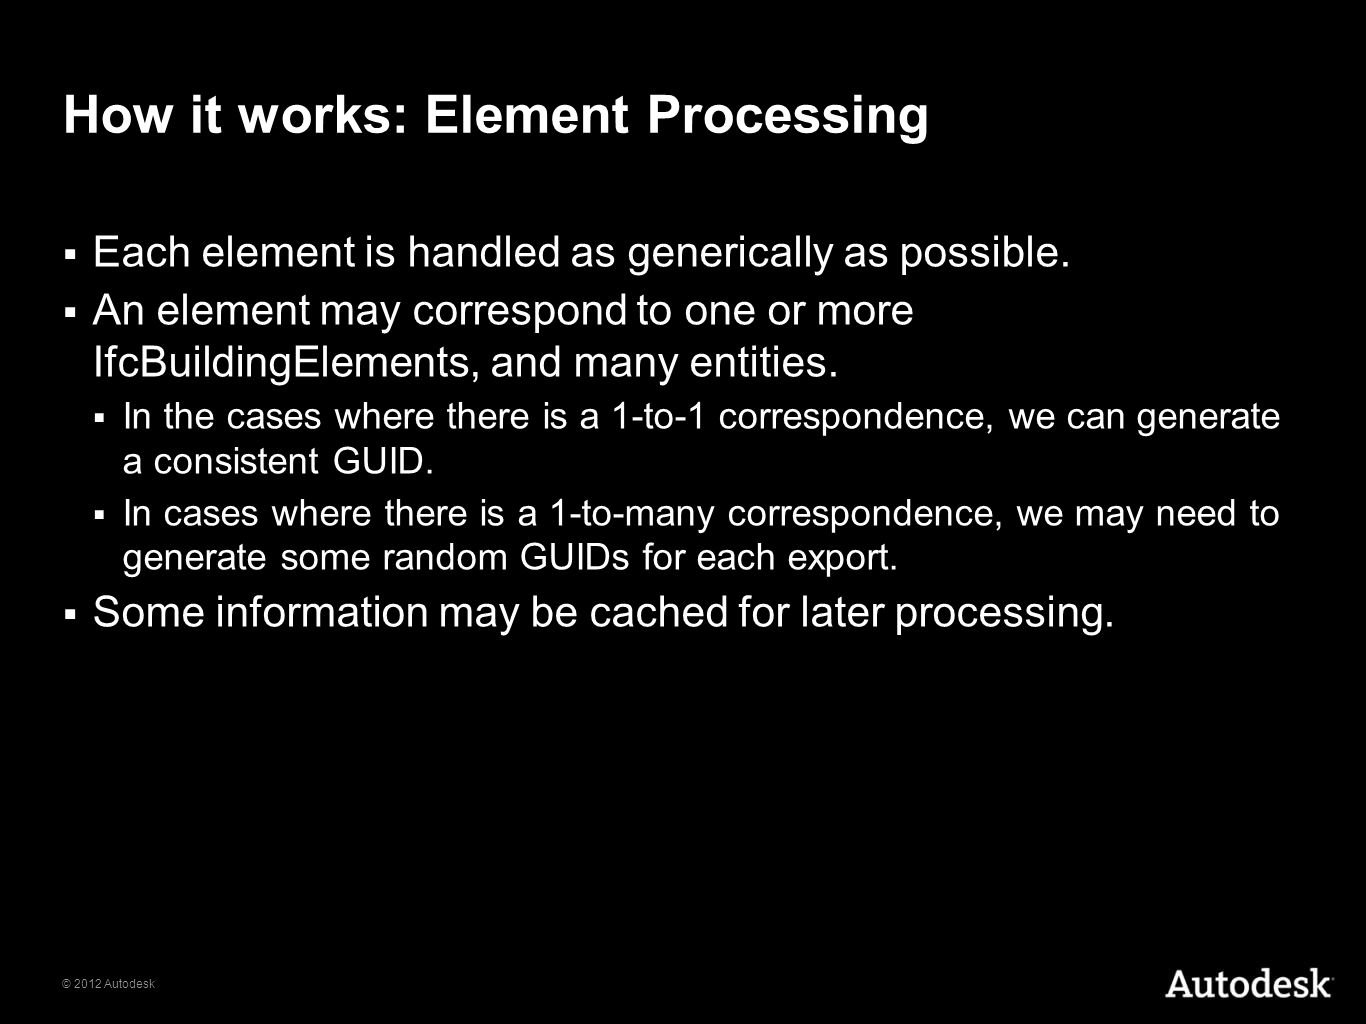 How it works: Element Processing